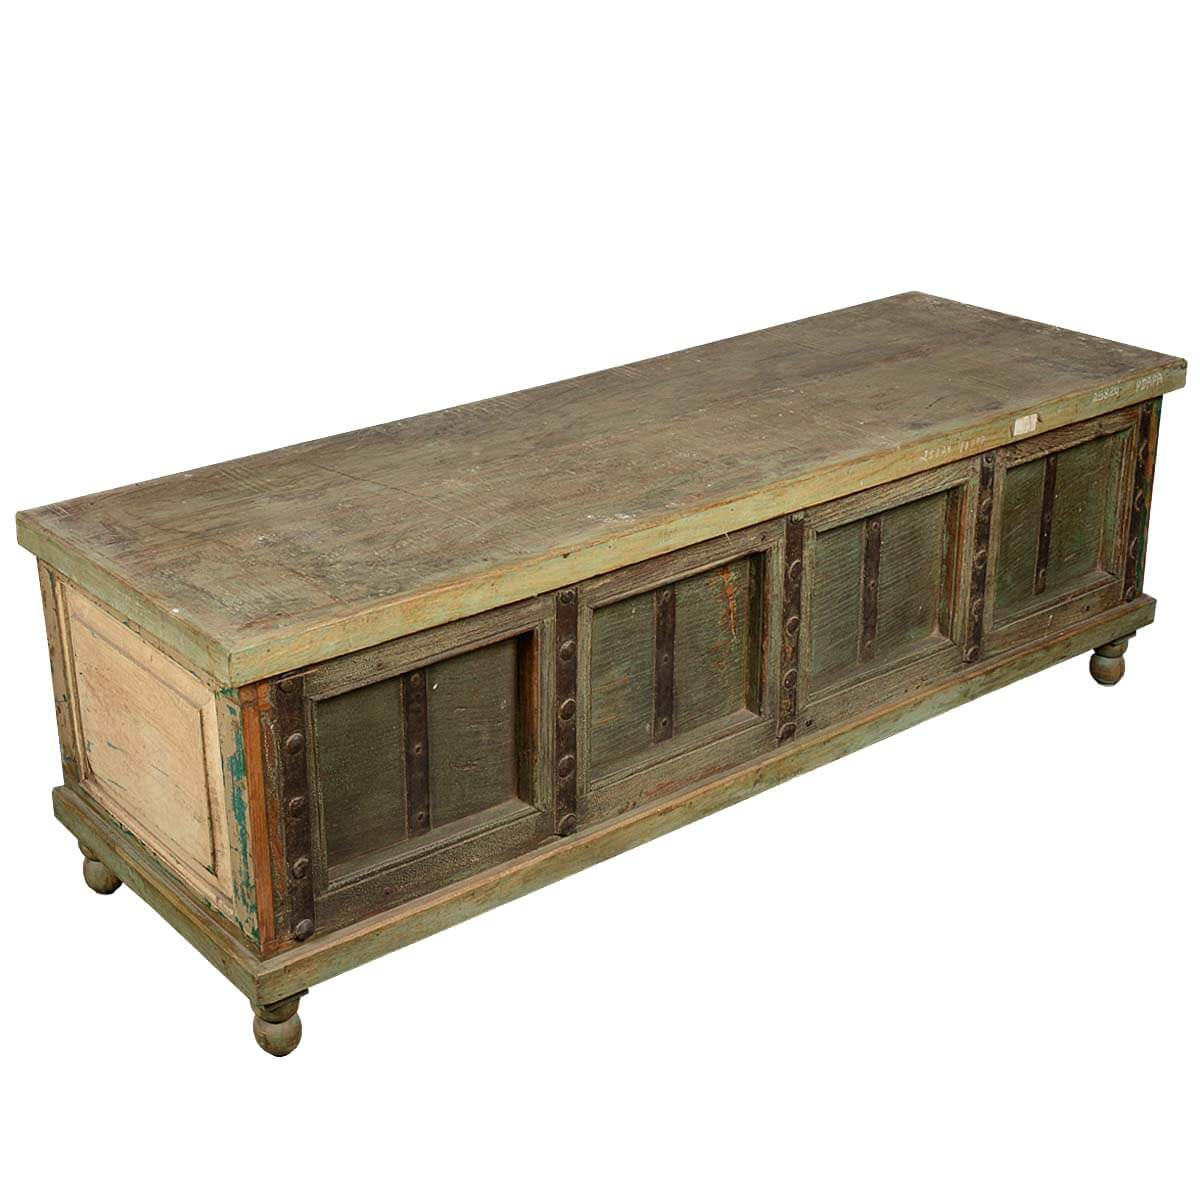 Rustic Reclaimed Wood Gothic Large Storage Trunk Chest